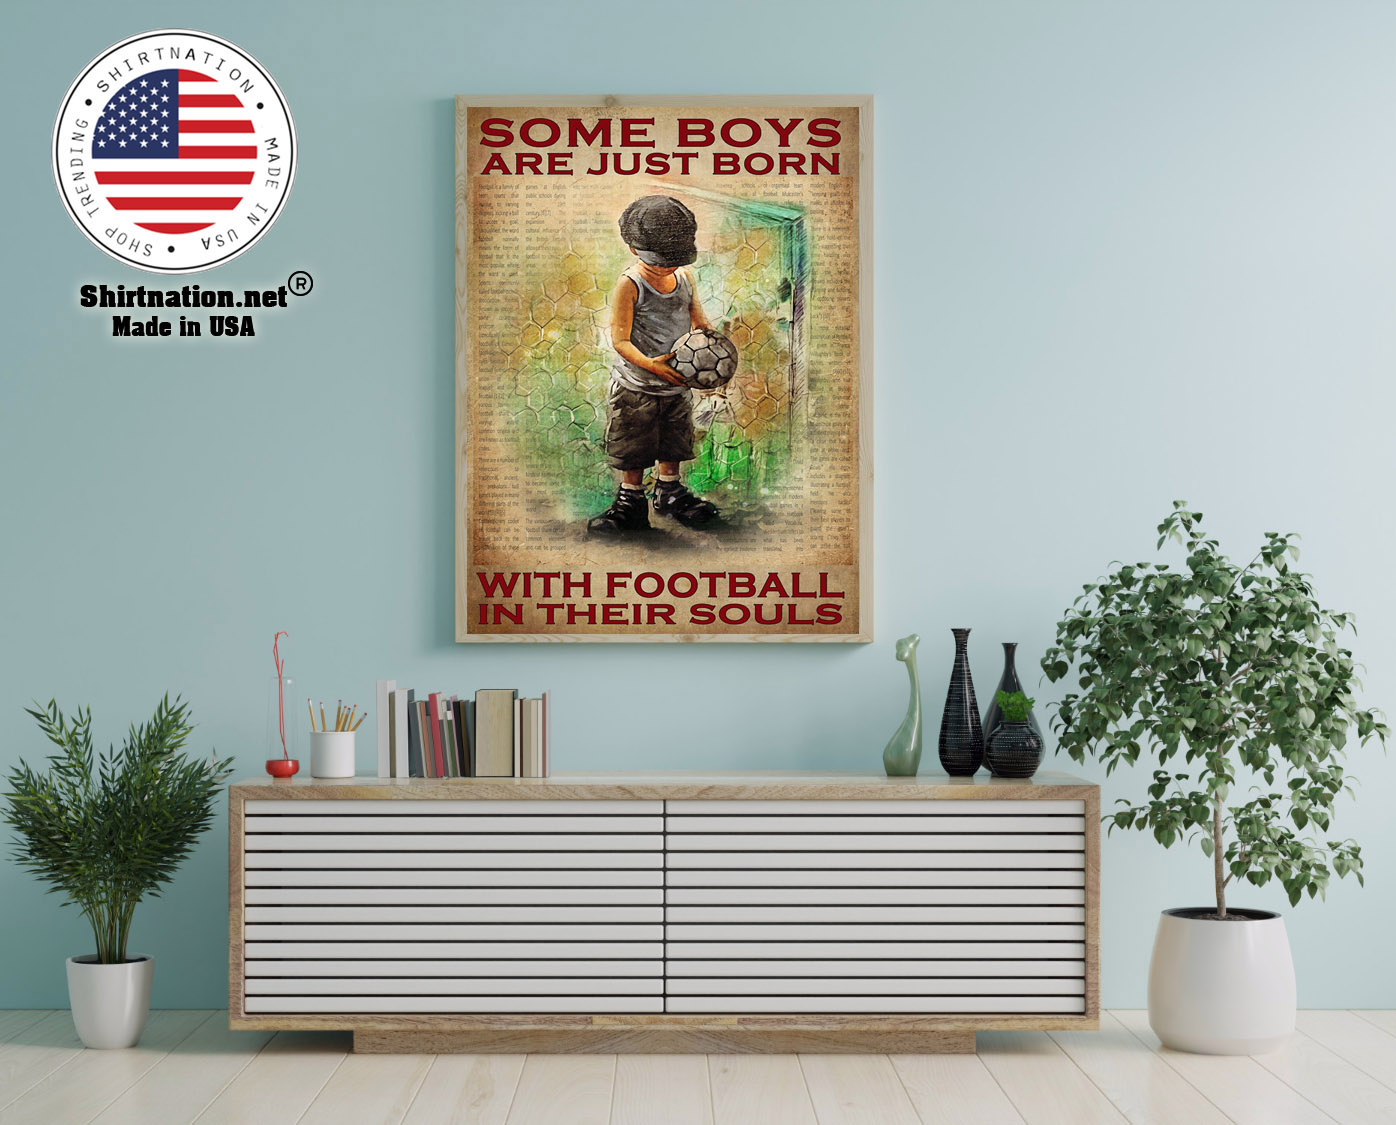 Some boys are just born with football in their souls poster 12